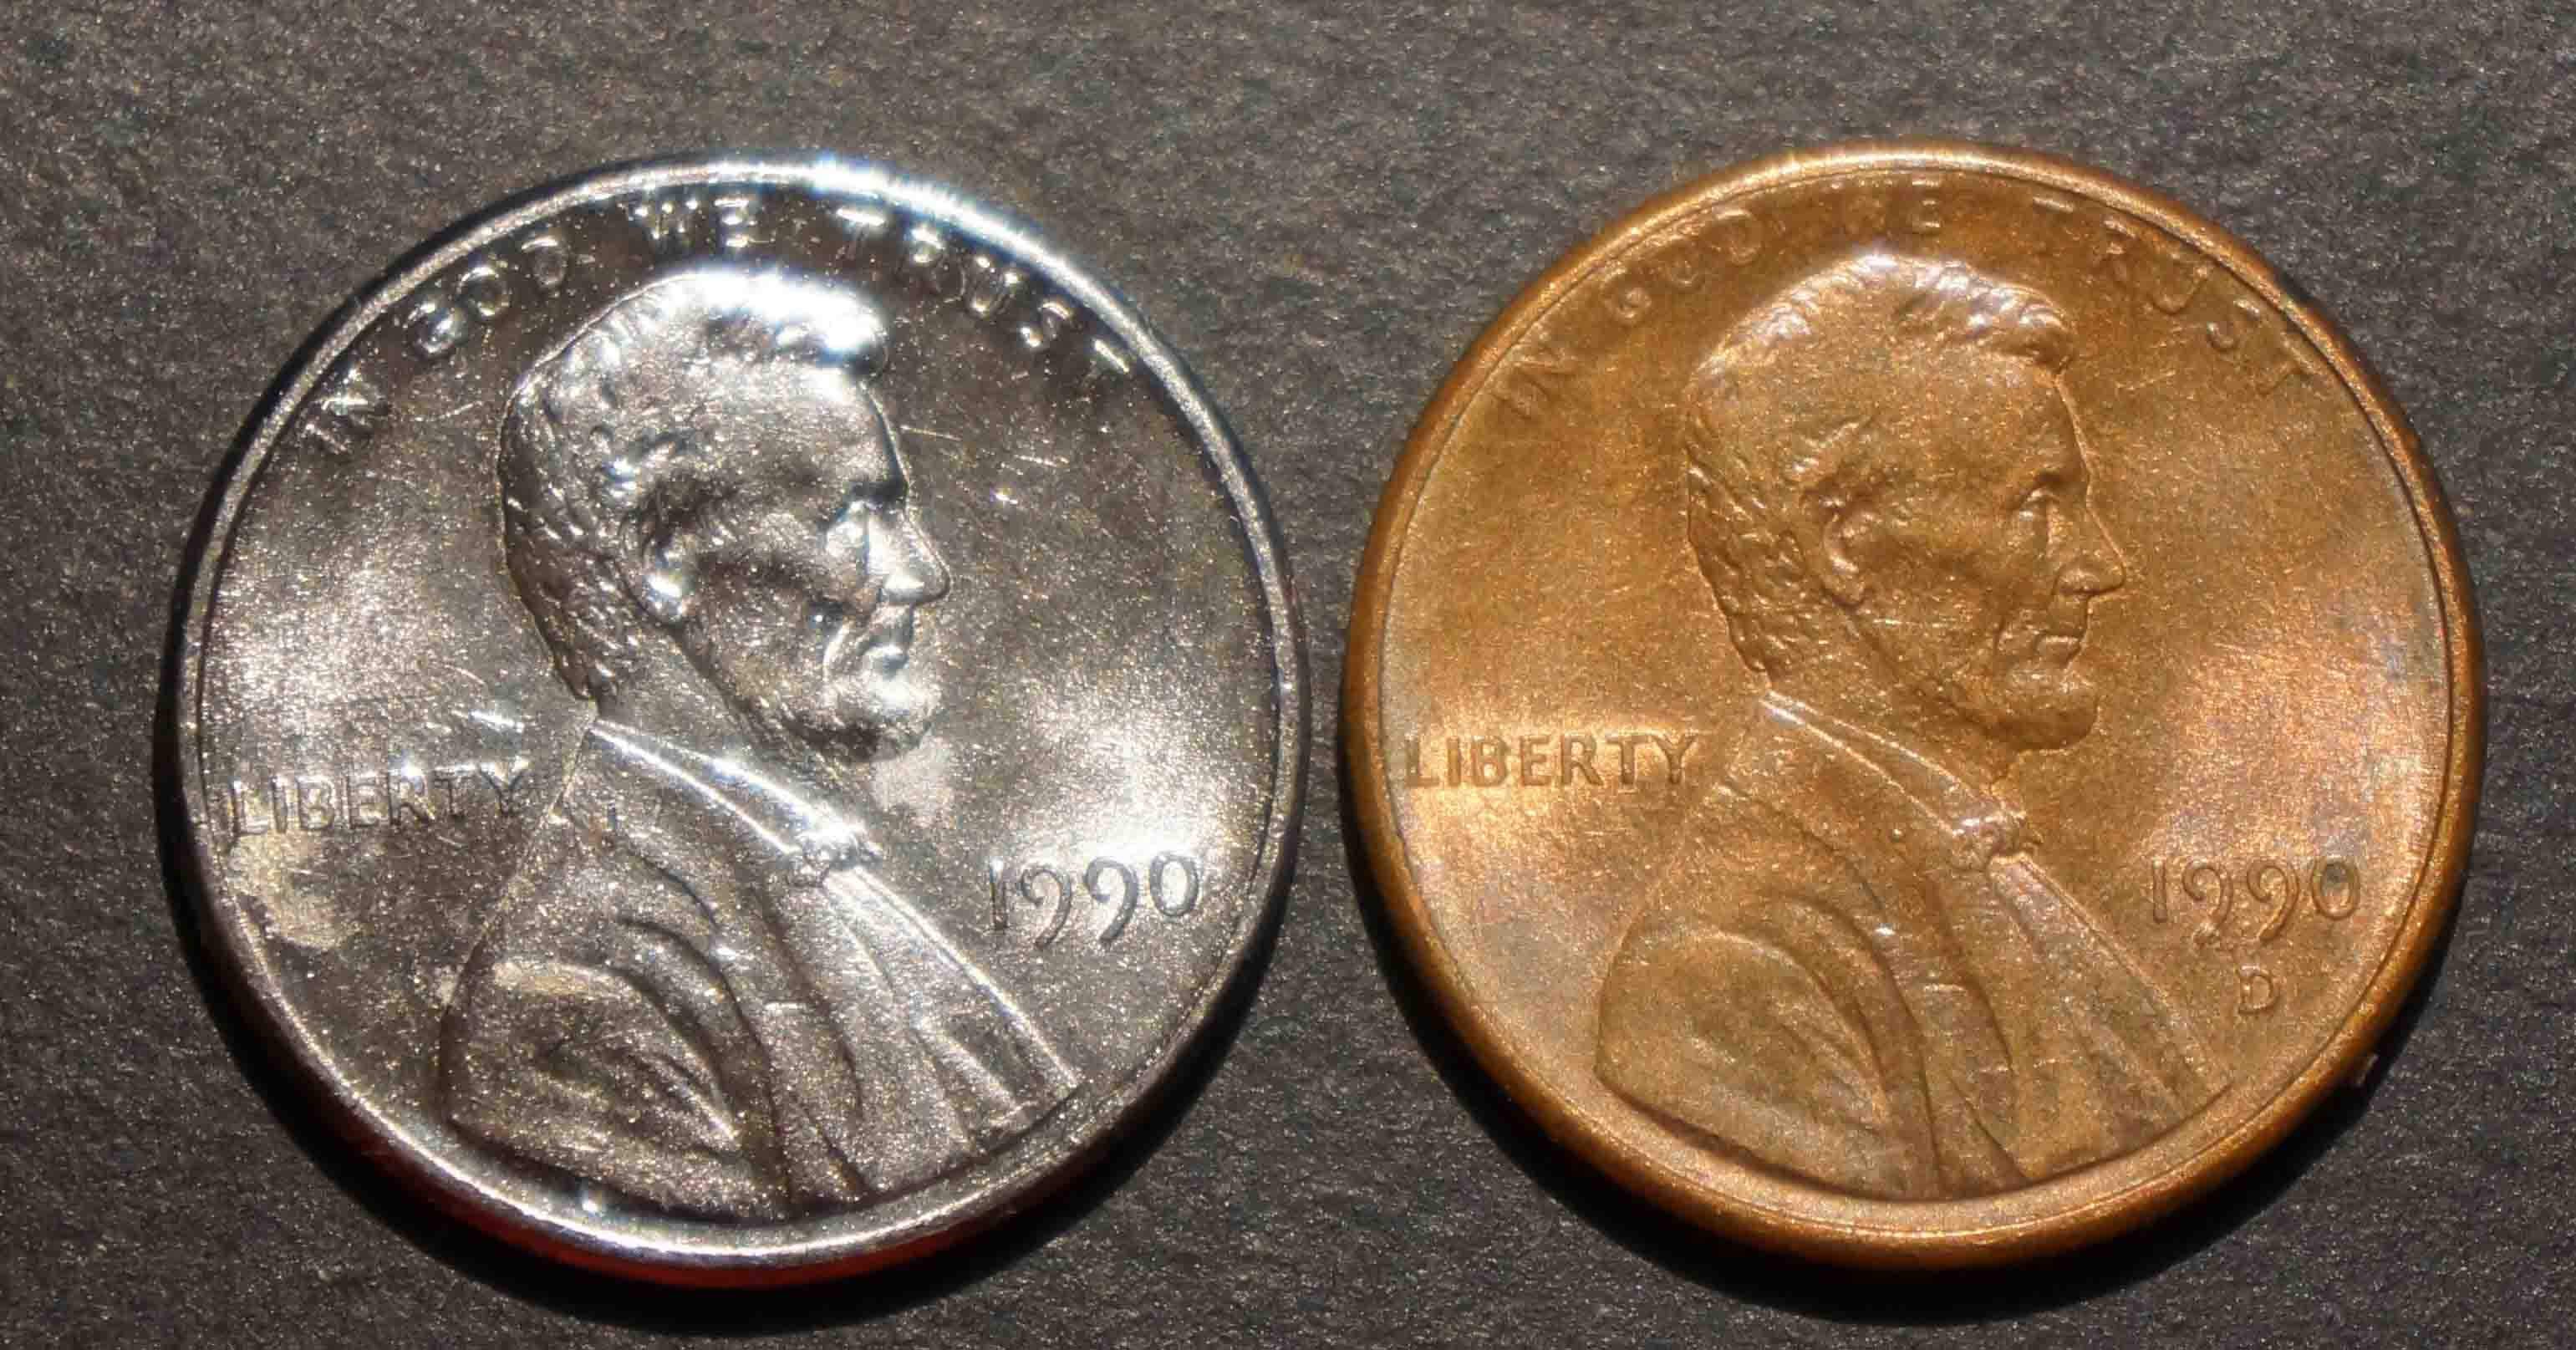 1990 Lincoln Penny Silver in color - Coin Community Forum